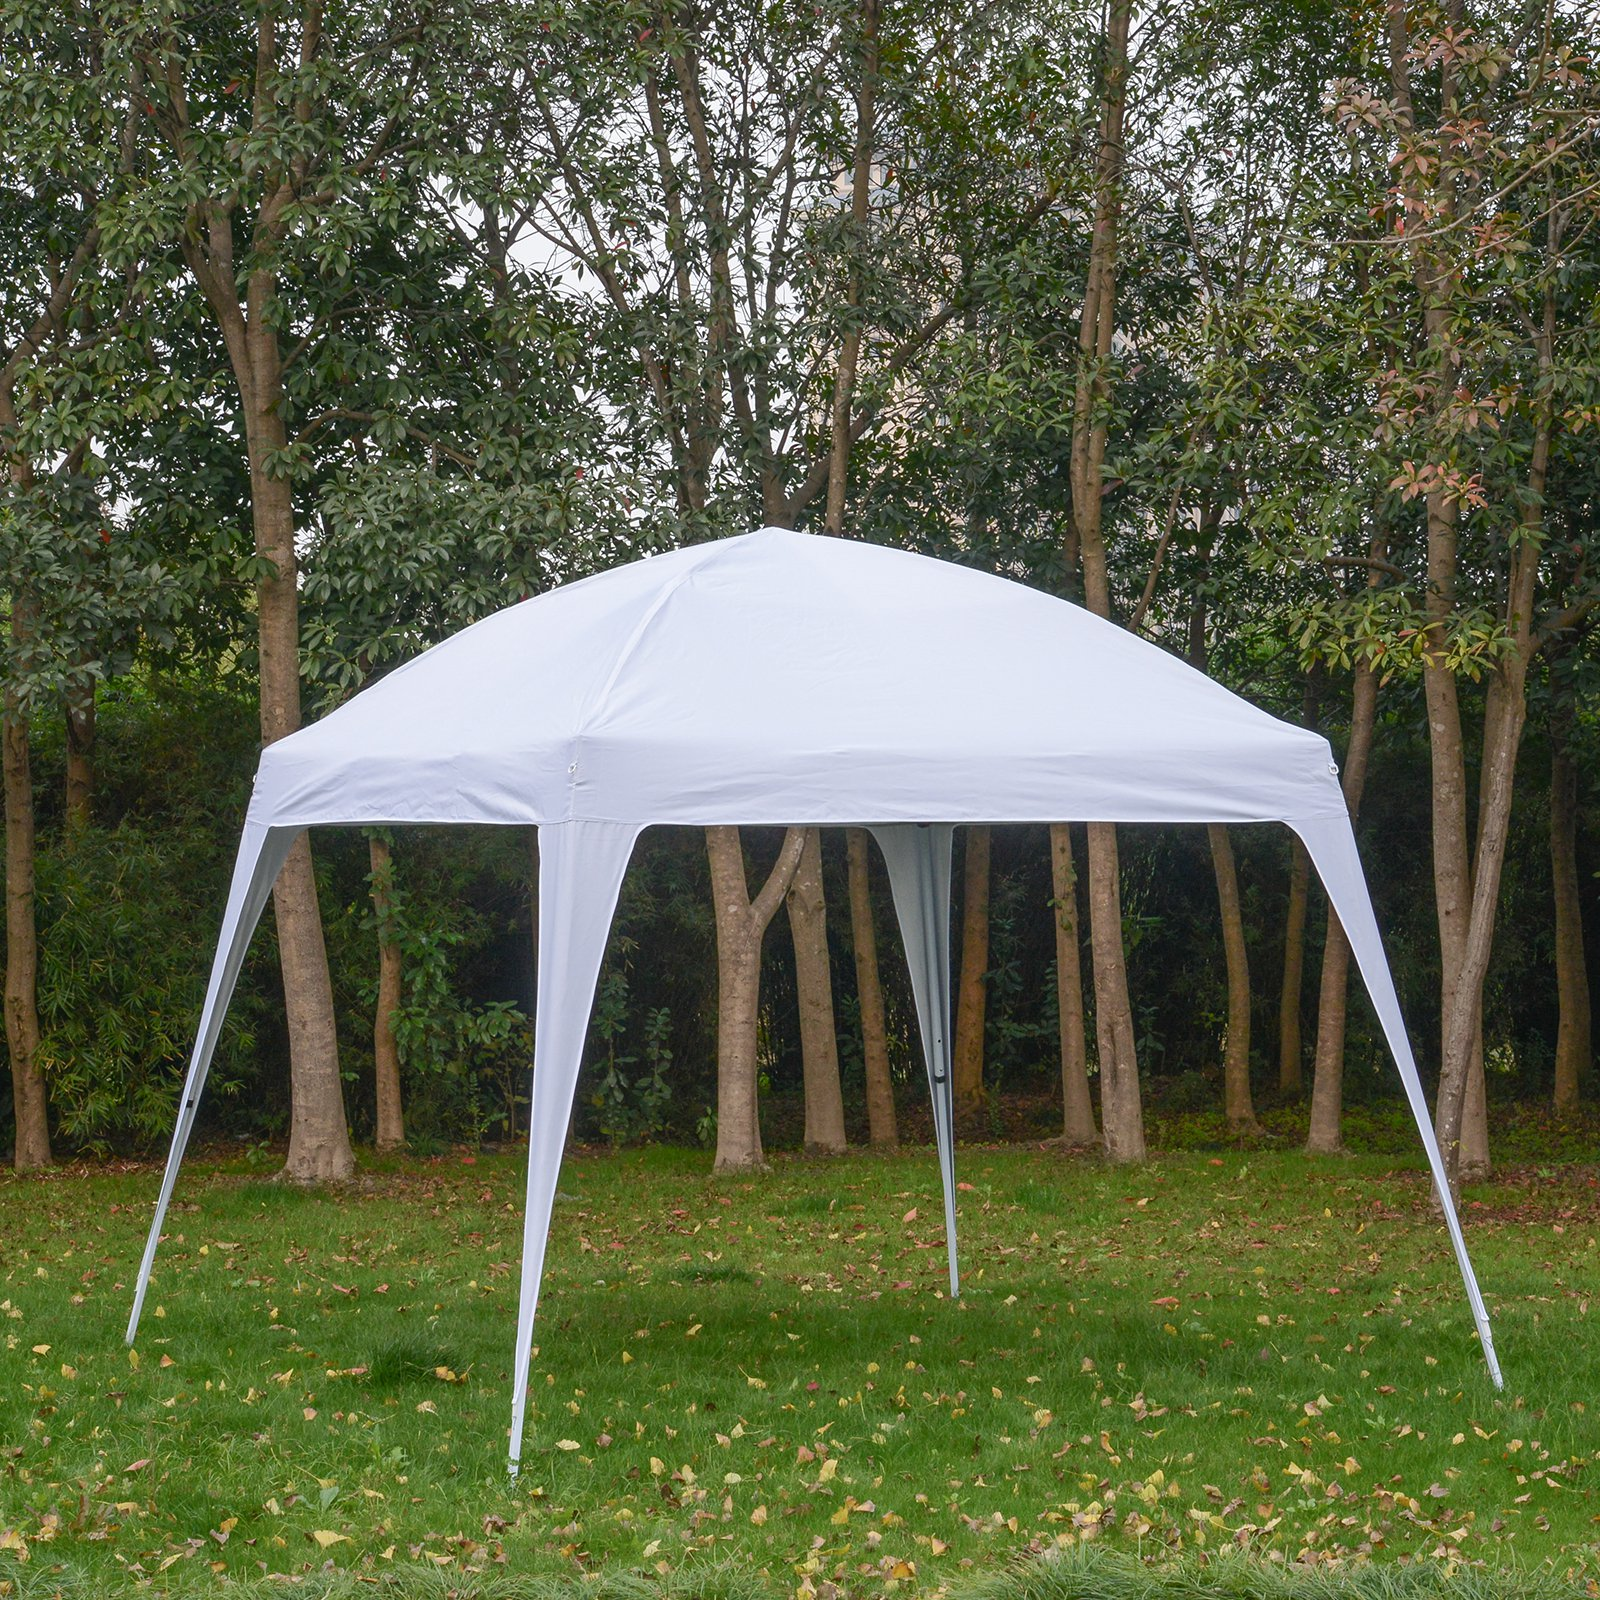 9.75' Large Dome Outdoor Portable Folding Sun Shade Pop Up Tent Canopy Straight-Leg Shelter